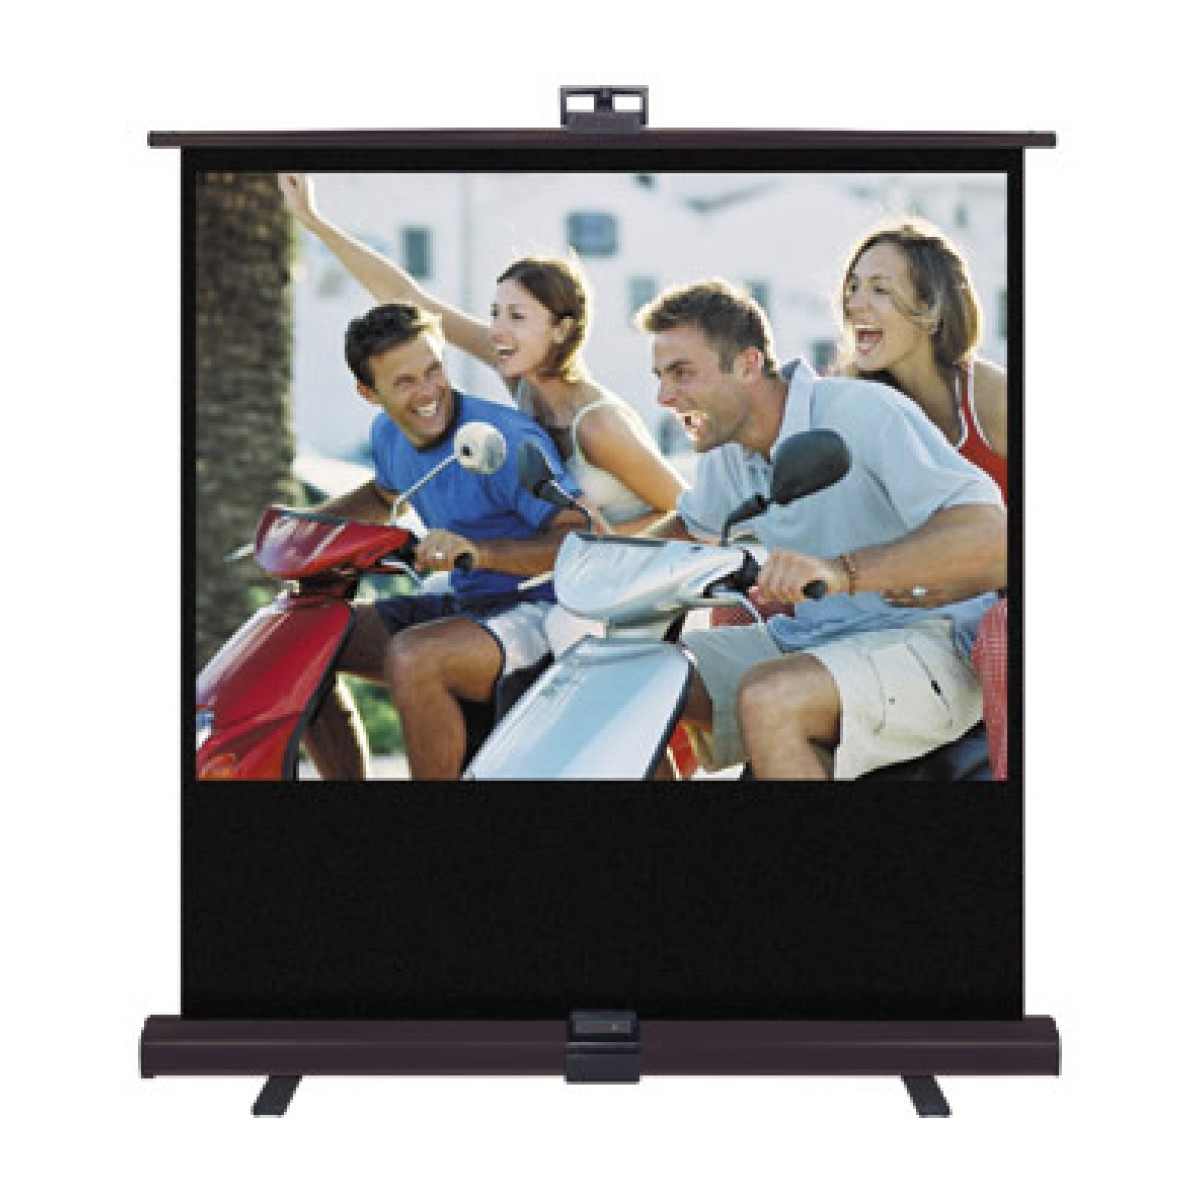 Grandview, Pull, Up, Screen, -, 60, (4:3), Image, size, 1220, x, 910mm, casing,